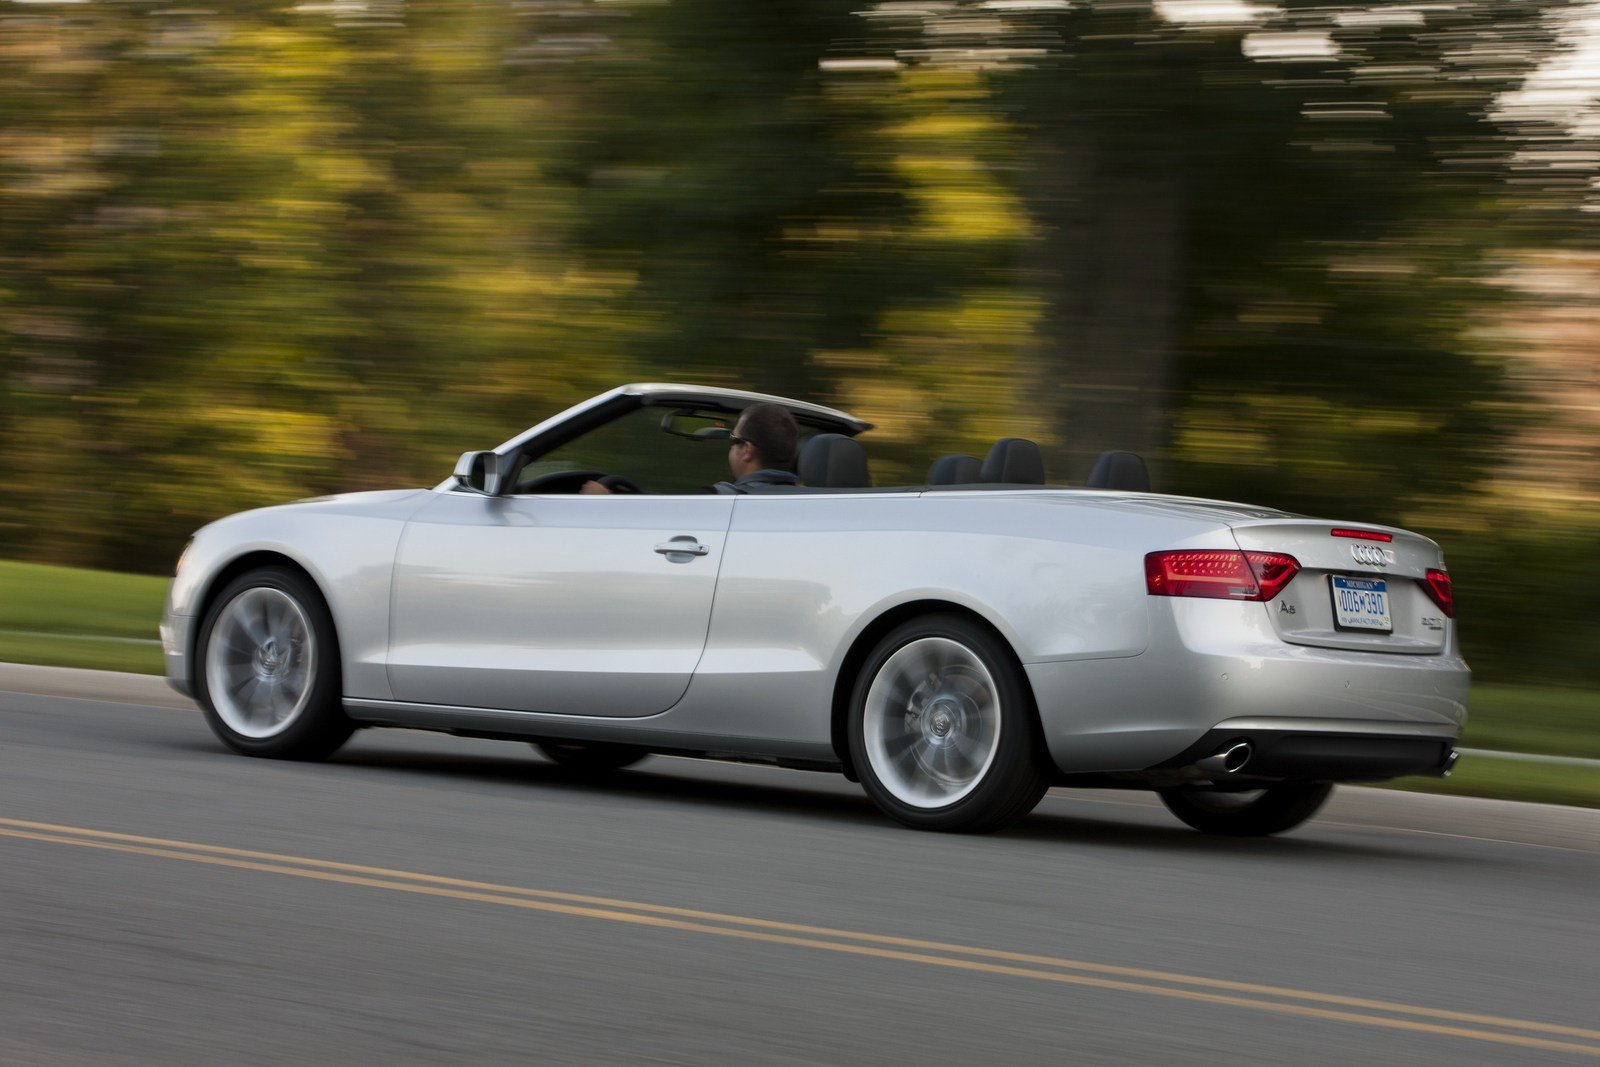 2014 audi a5 convertible picture 511603 car review top speed. Cars Review. Best American Auto & Cars Review